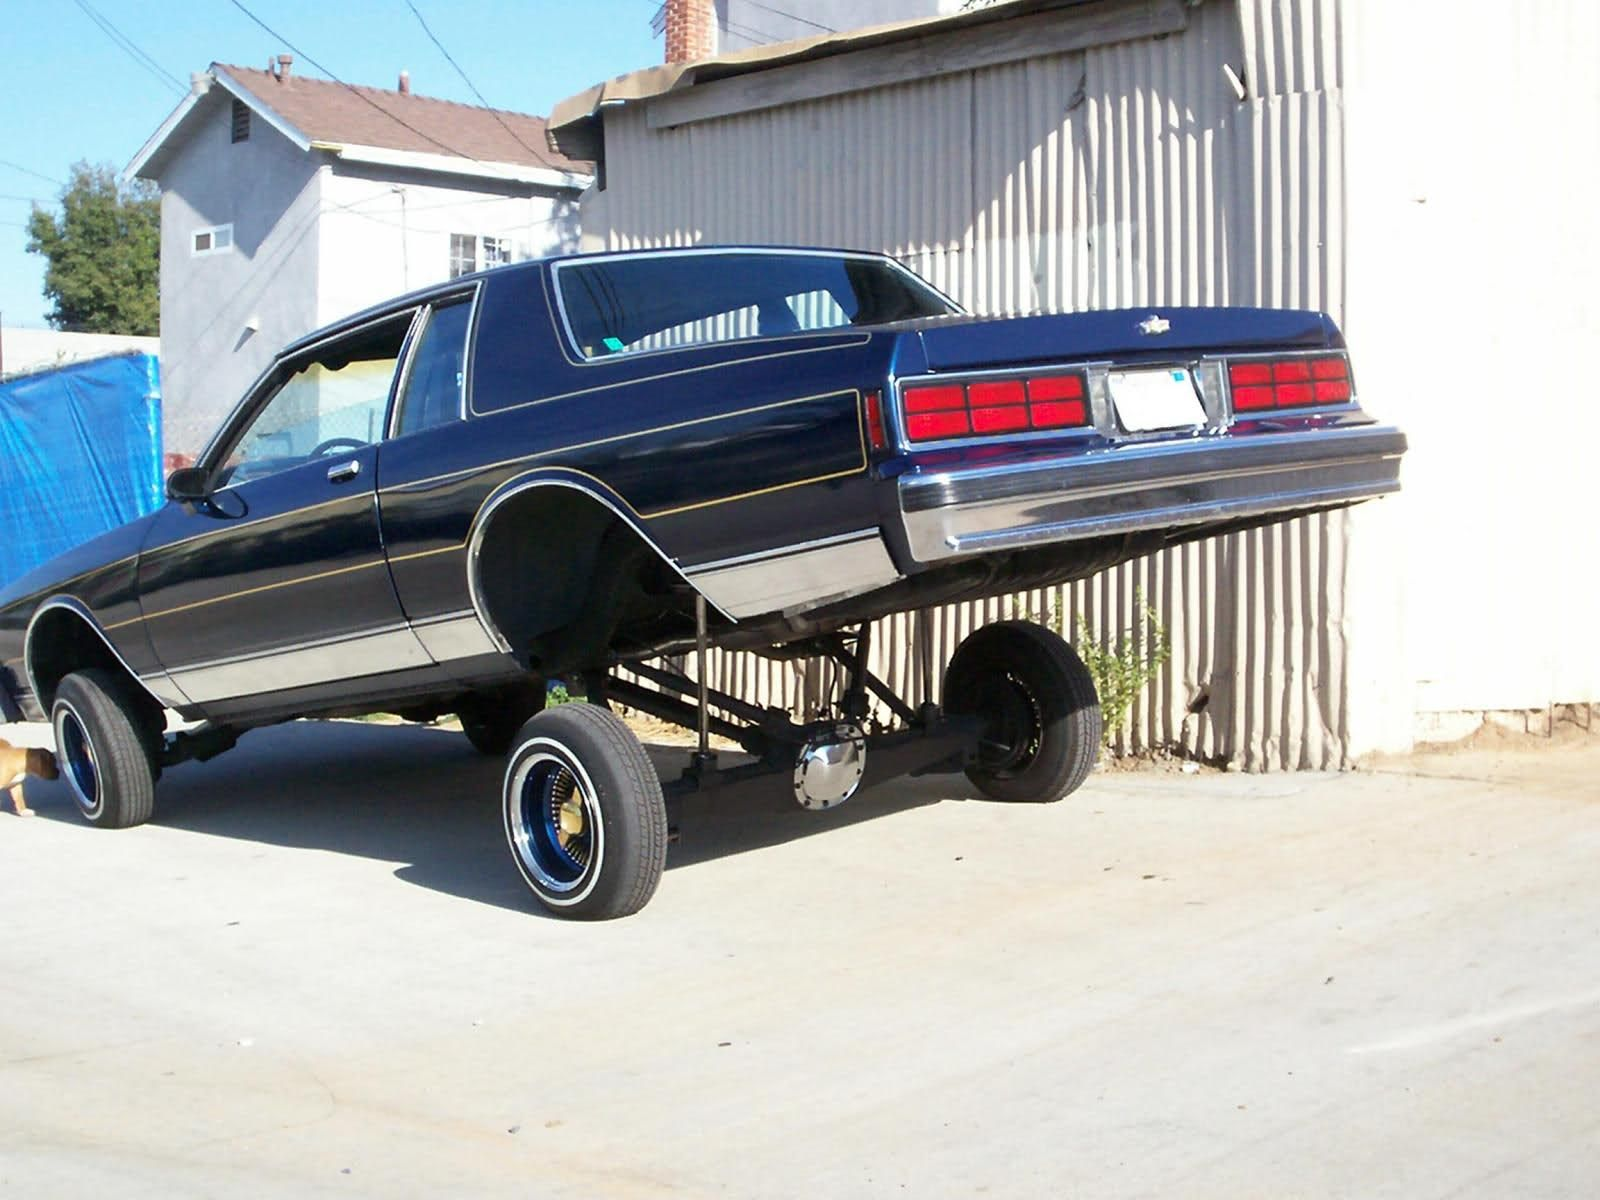 caprice coupe craigslist - Google Search | caprice lowrider Two door